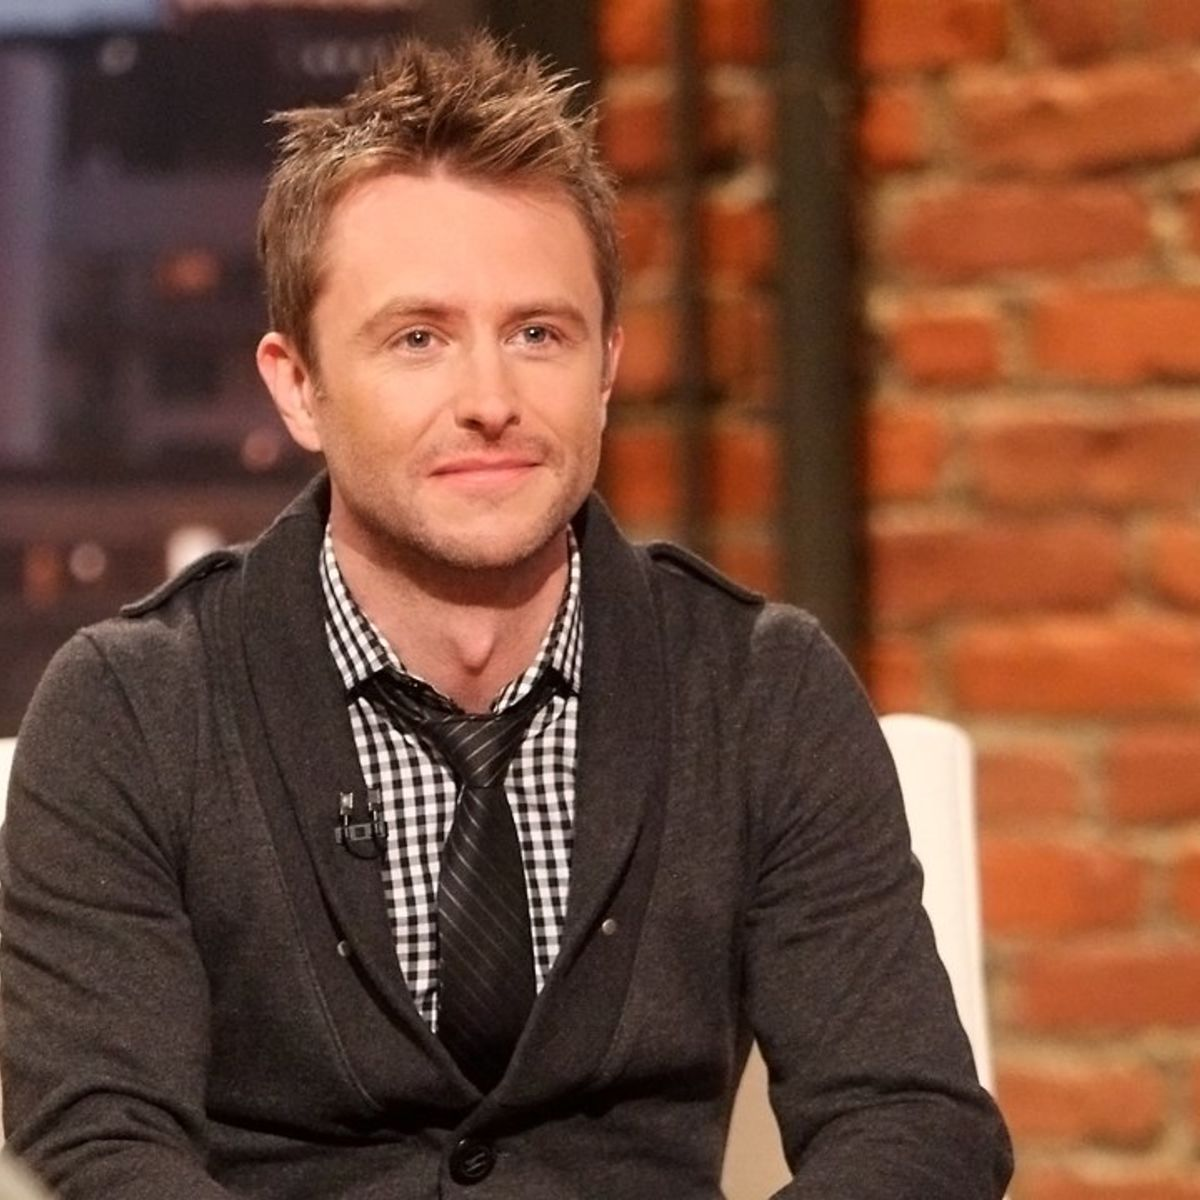 Chris Hardwick gets emotional upon 'Talking Dead' return